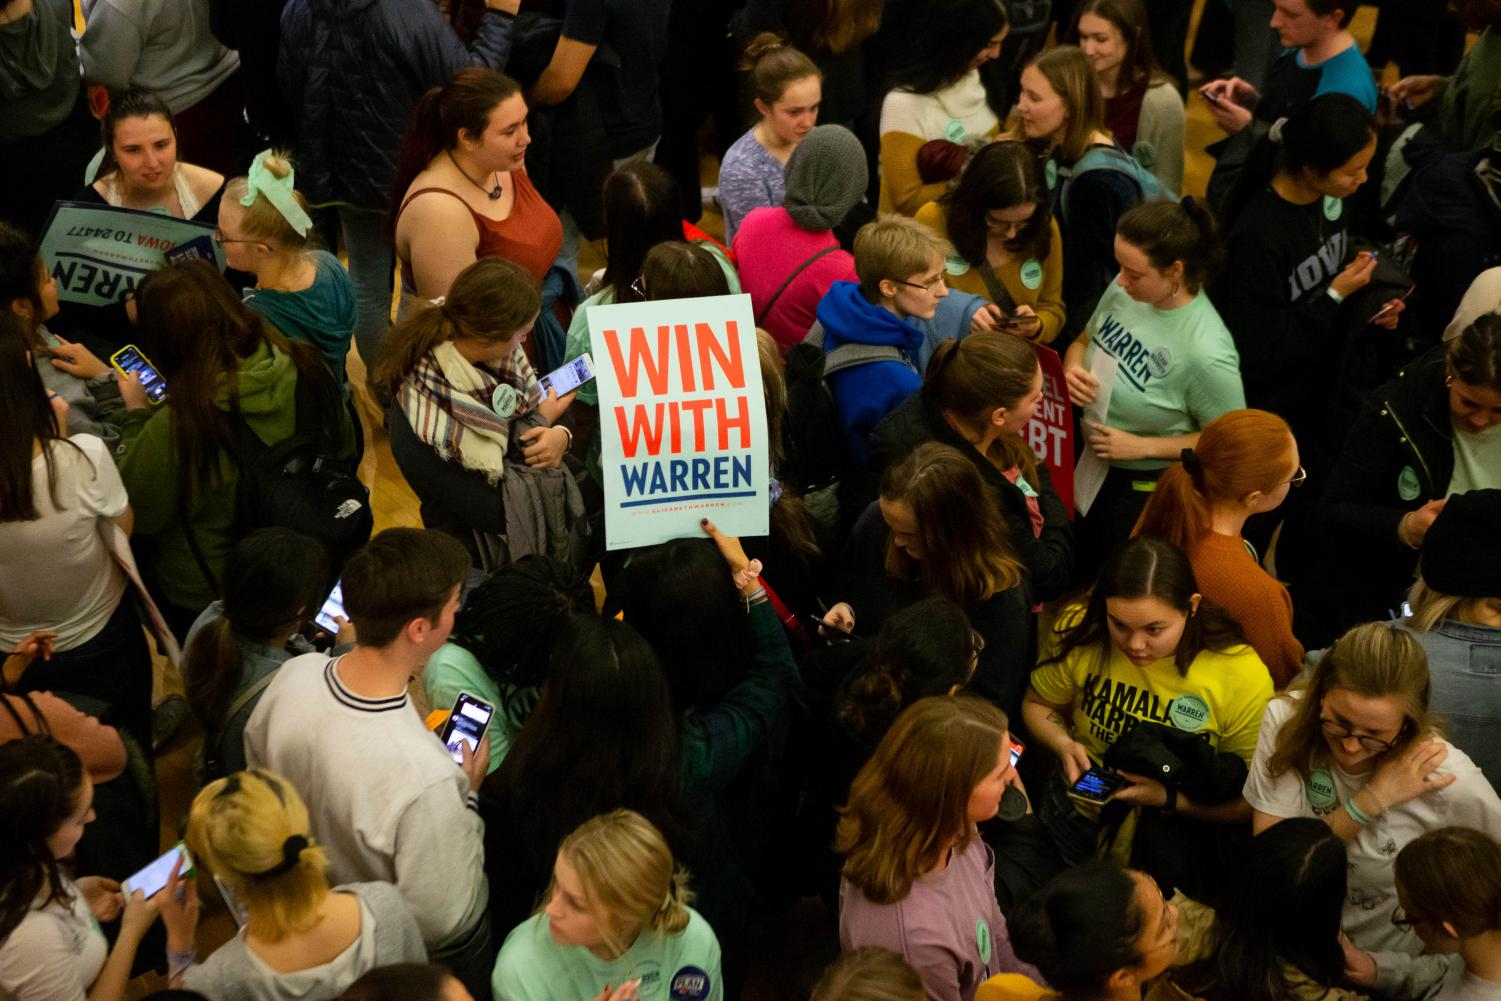 A sign for Sen. Elizabeth Warren, D-Mass. is seen during a caucus at the Iowa Memorial Union on Feb. 3.